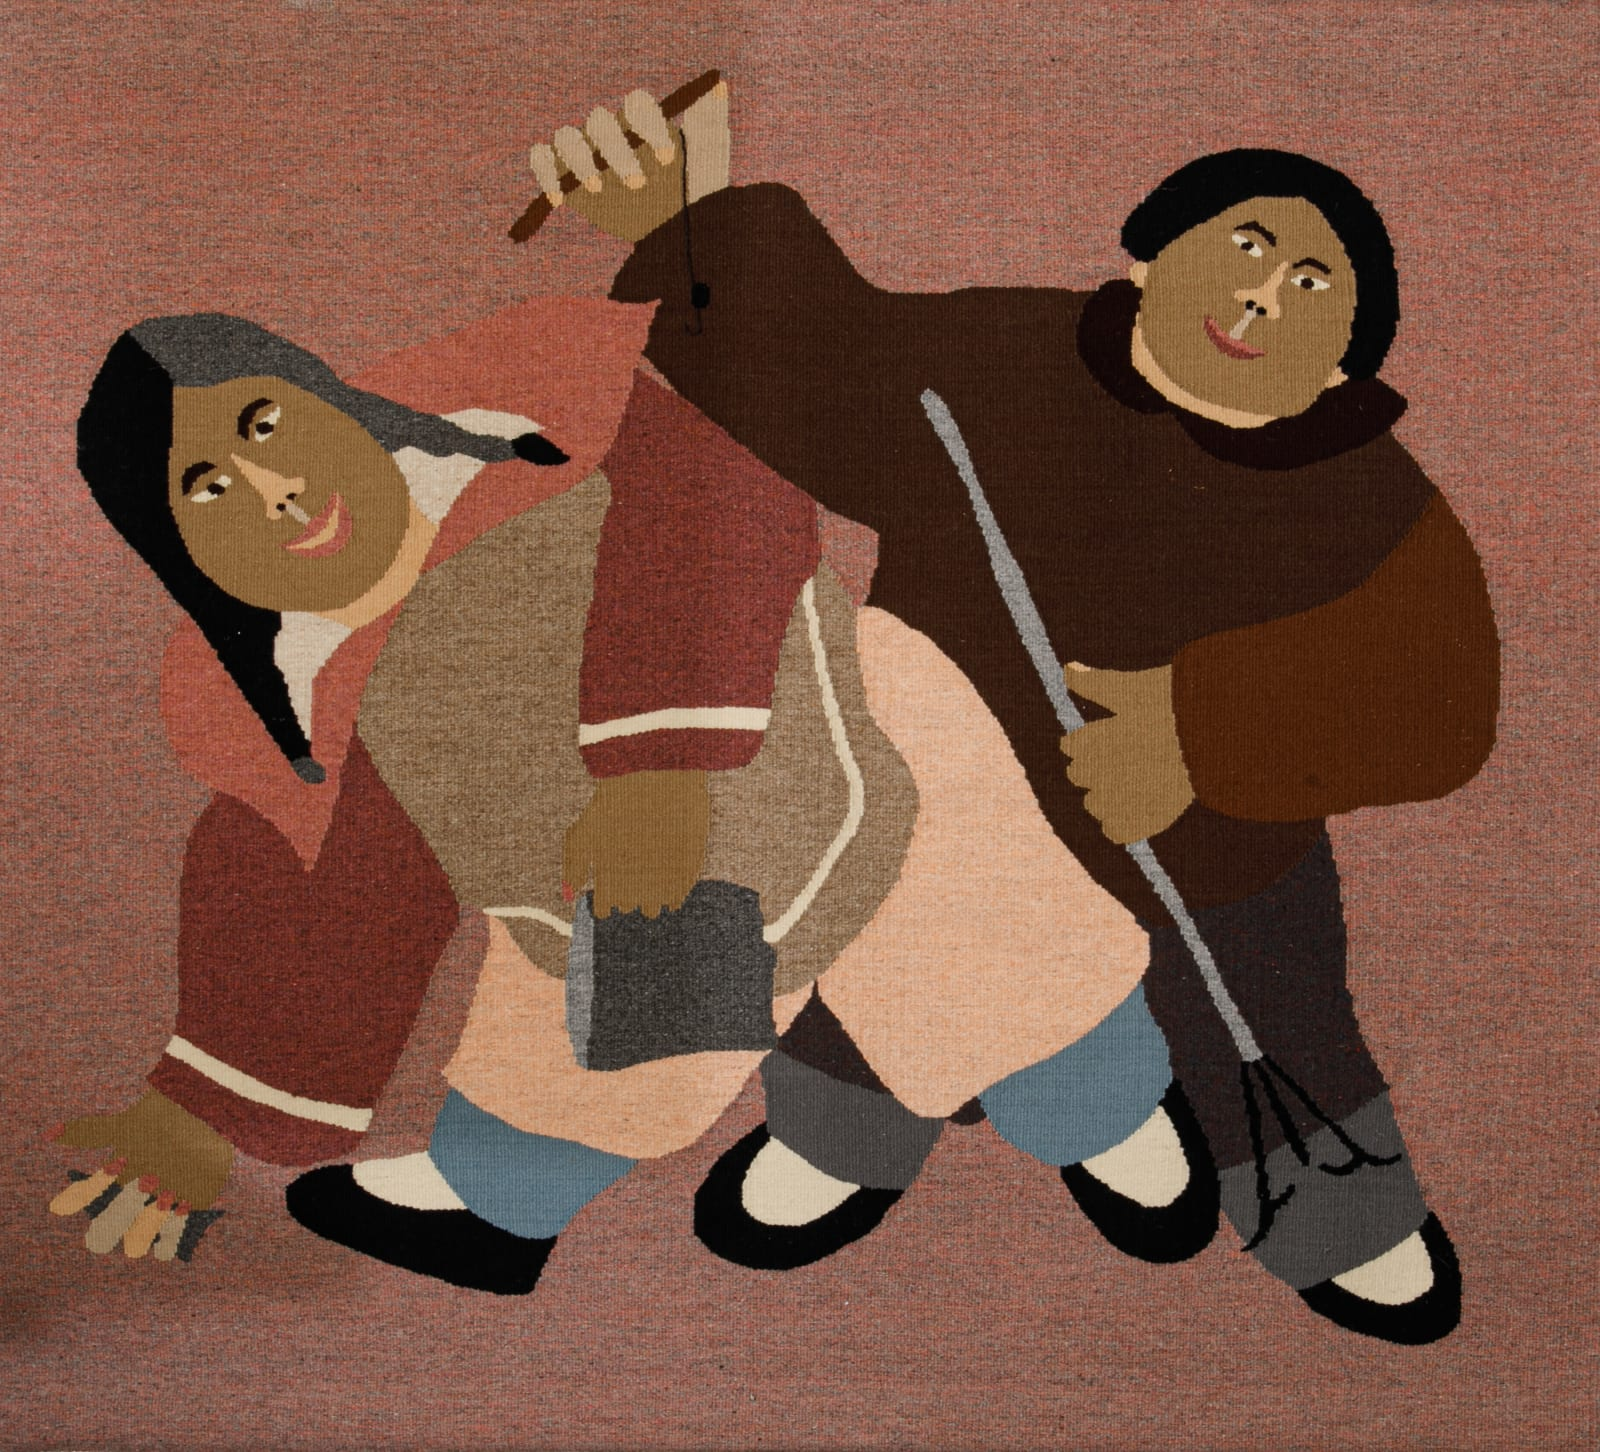 ANNIE PITSIULAK (1950-) PANNIRTUQ (PANGNIRTUNG) Going Fishing, 1964 #265 woven and dyed wool, 52.5 x 57 in (133.3 x 144.8 cm)